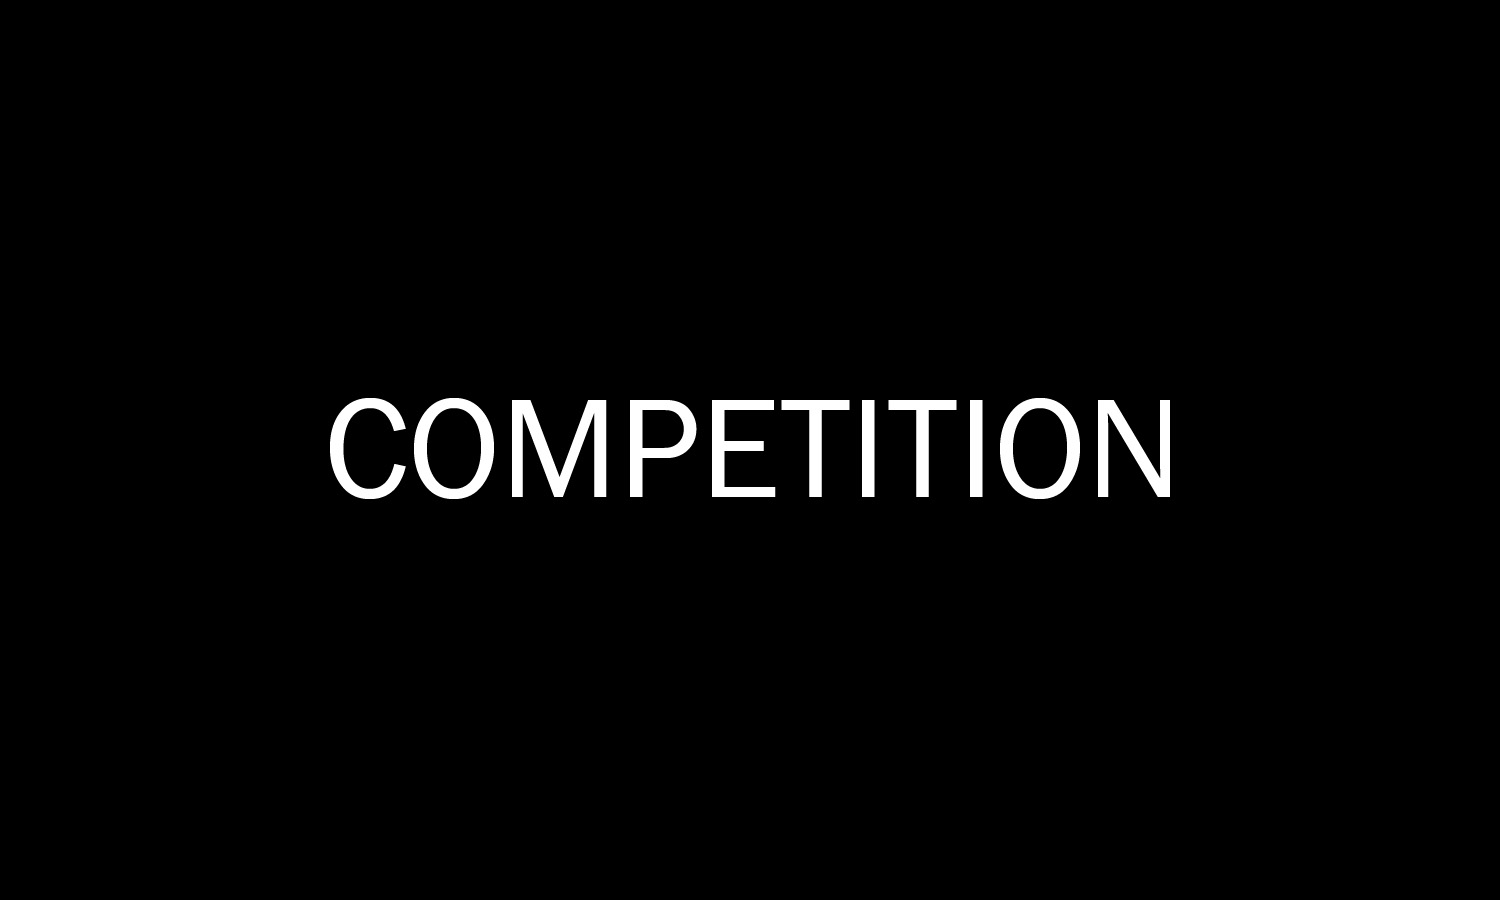 COMPETITION.jpg